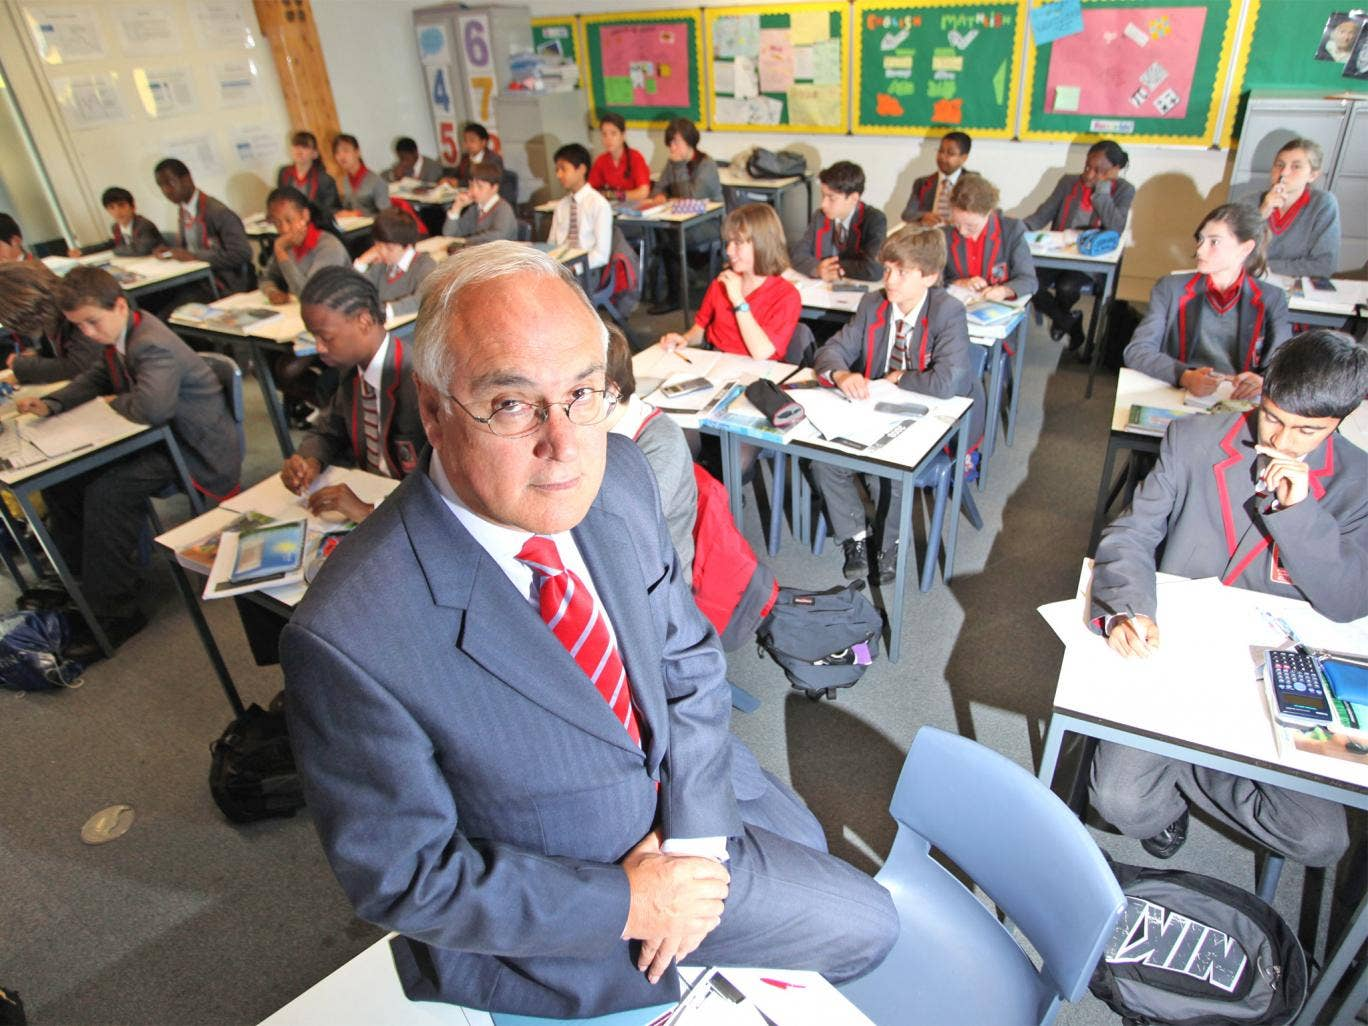 Sir Michael Wilshaw, head of education standards watchdog Ofsted